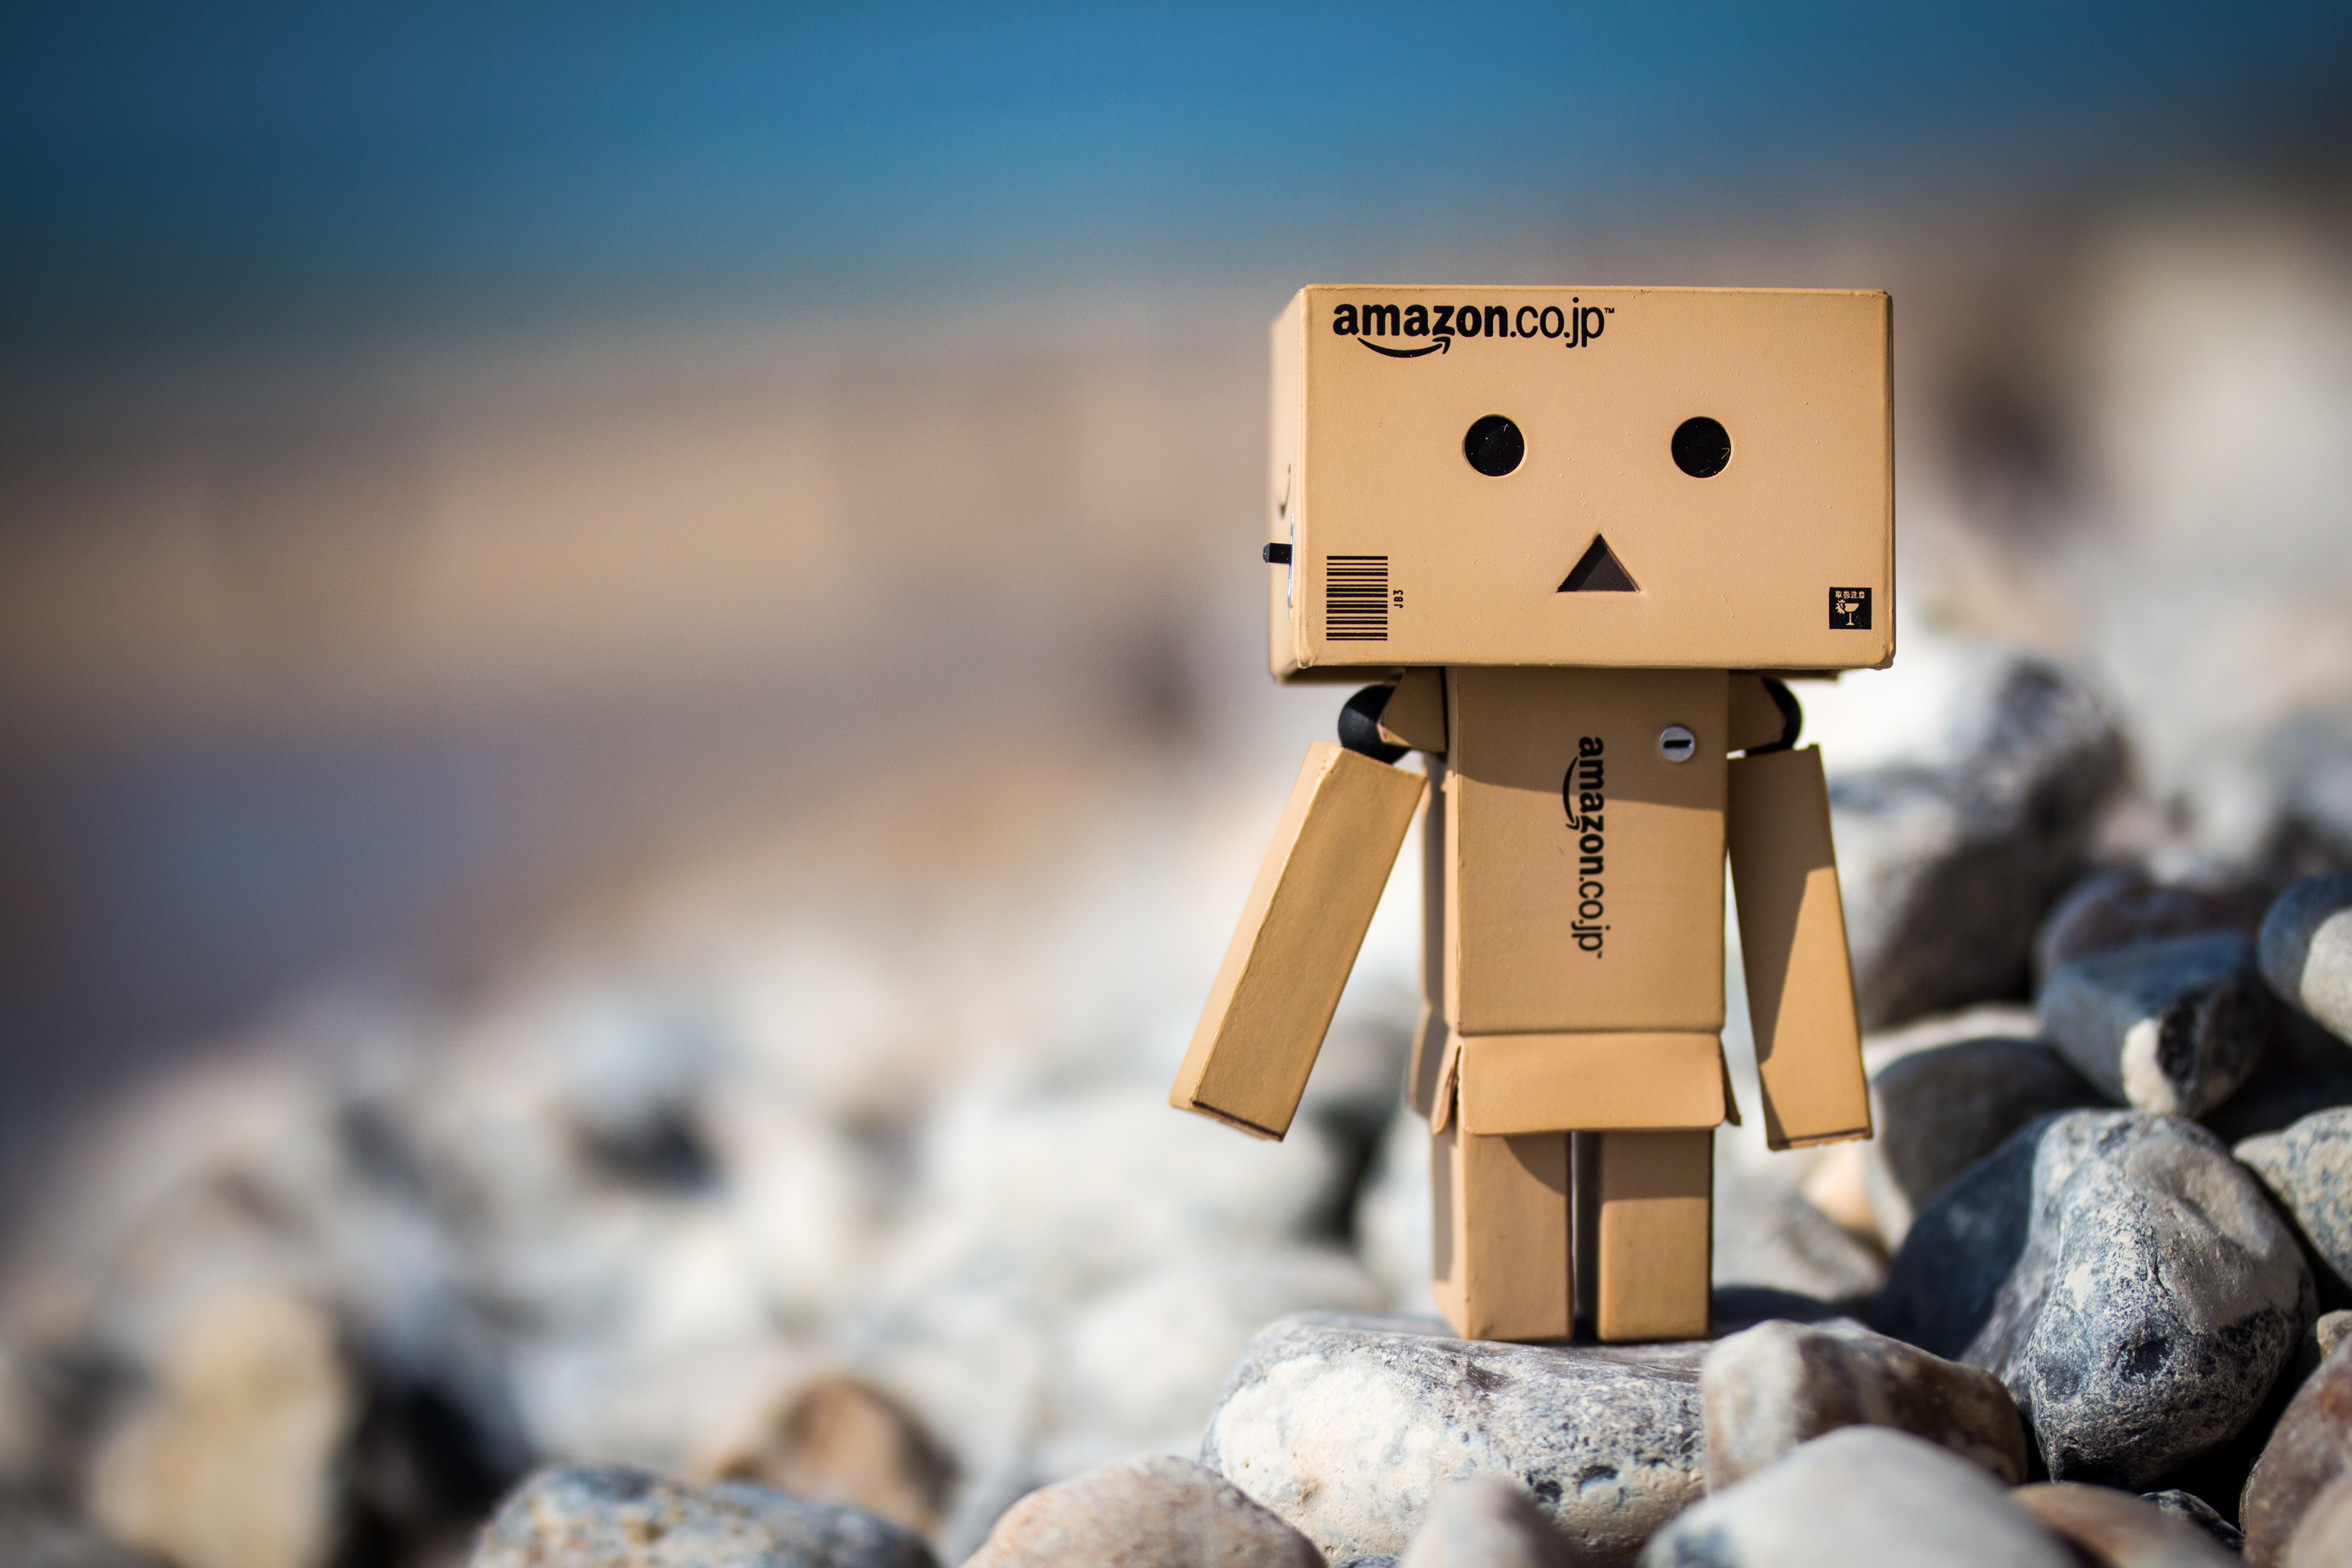 Danbo wallpapers pictures images - Amazon wallpaper hd ...